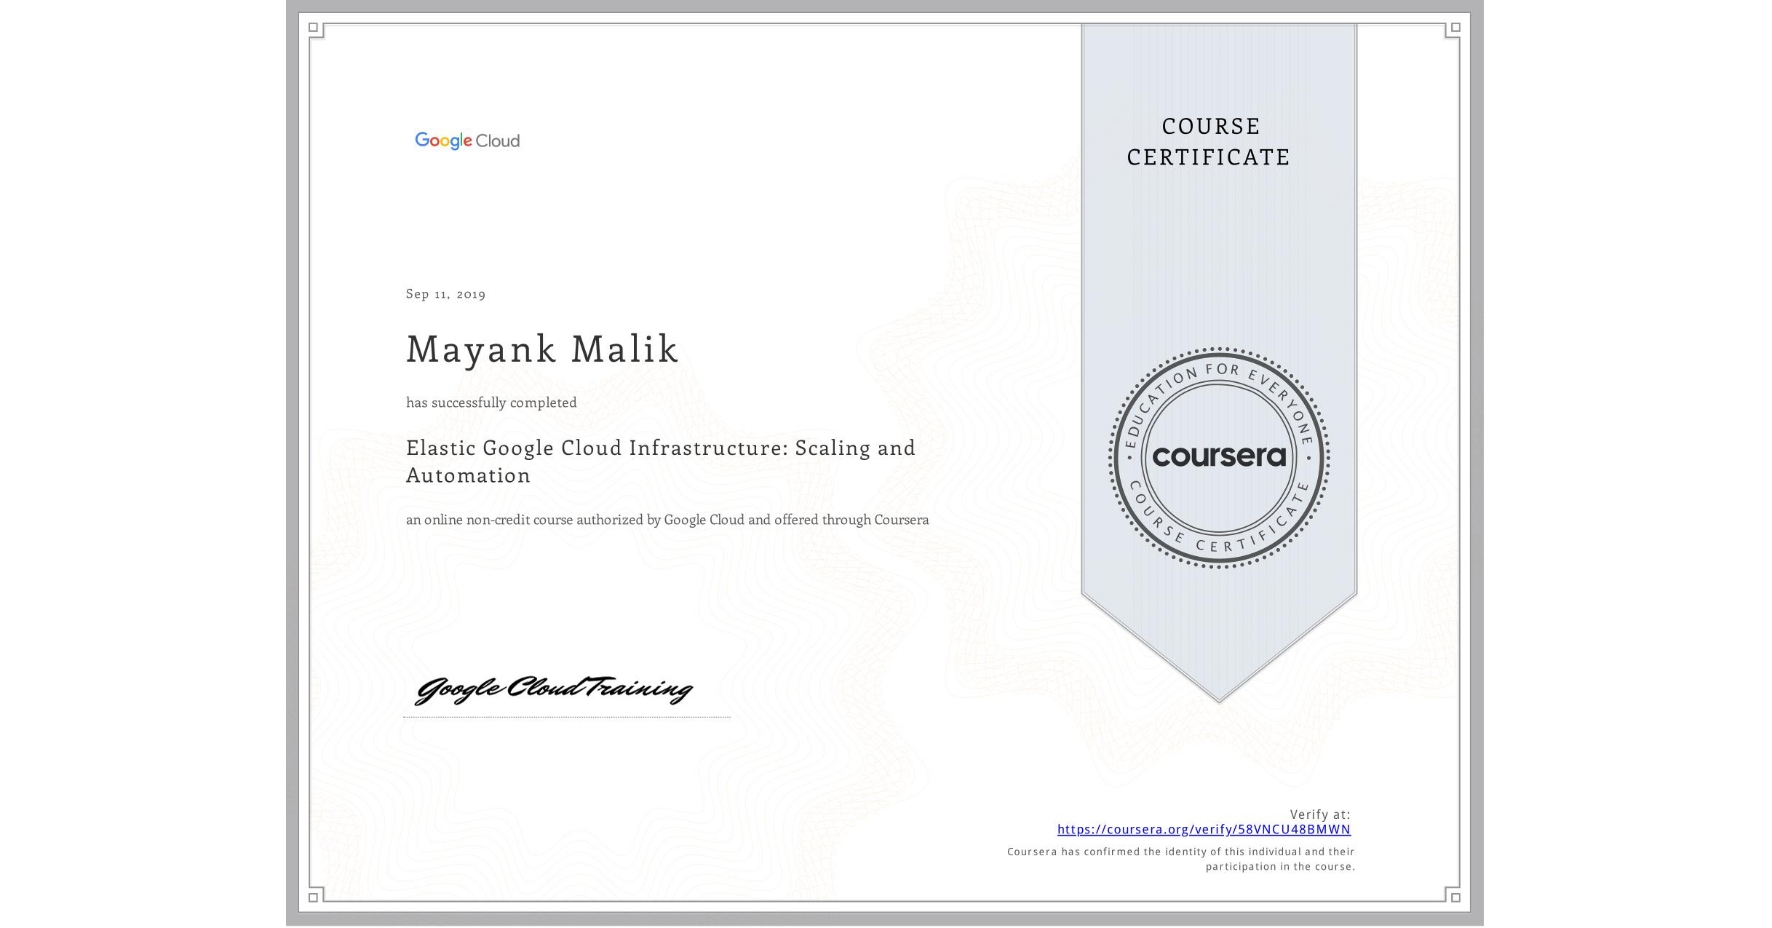 View certificate for Mayank Malik, Elastic Google Cloud Infrastructure: Scaling and Automation, an online non-credit course authorized by Google Cloud and offered through Coursera